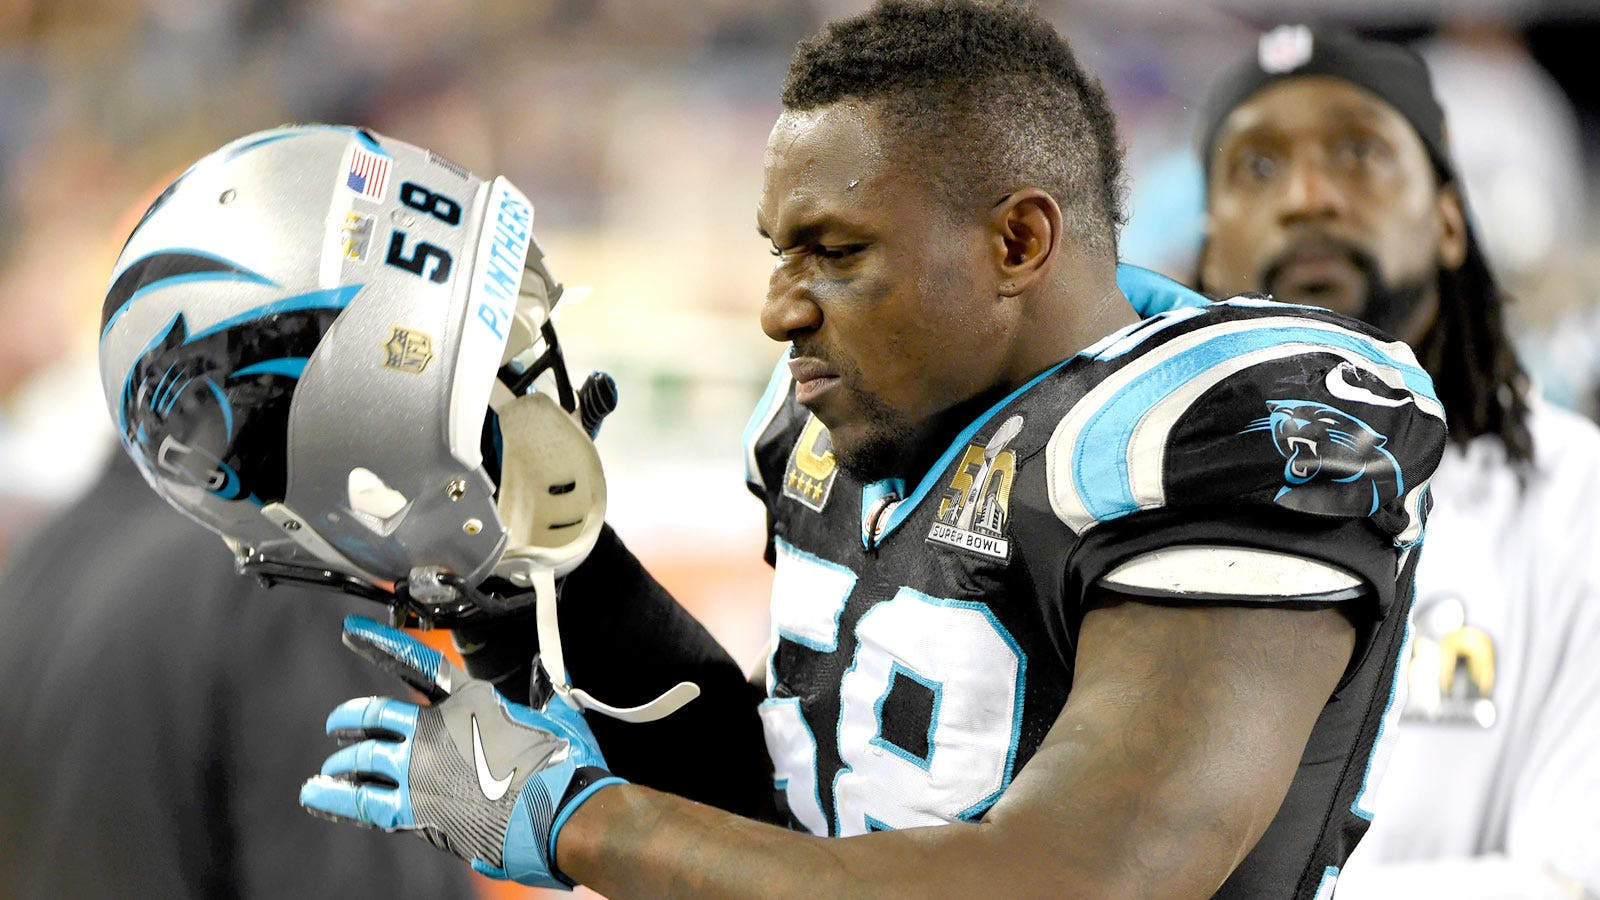 separation shoes 4571b f5a13 Thomas Davis shares horrifying photo of his arm after Super ...